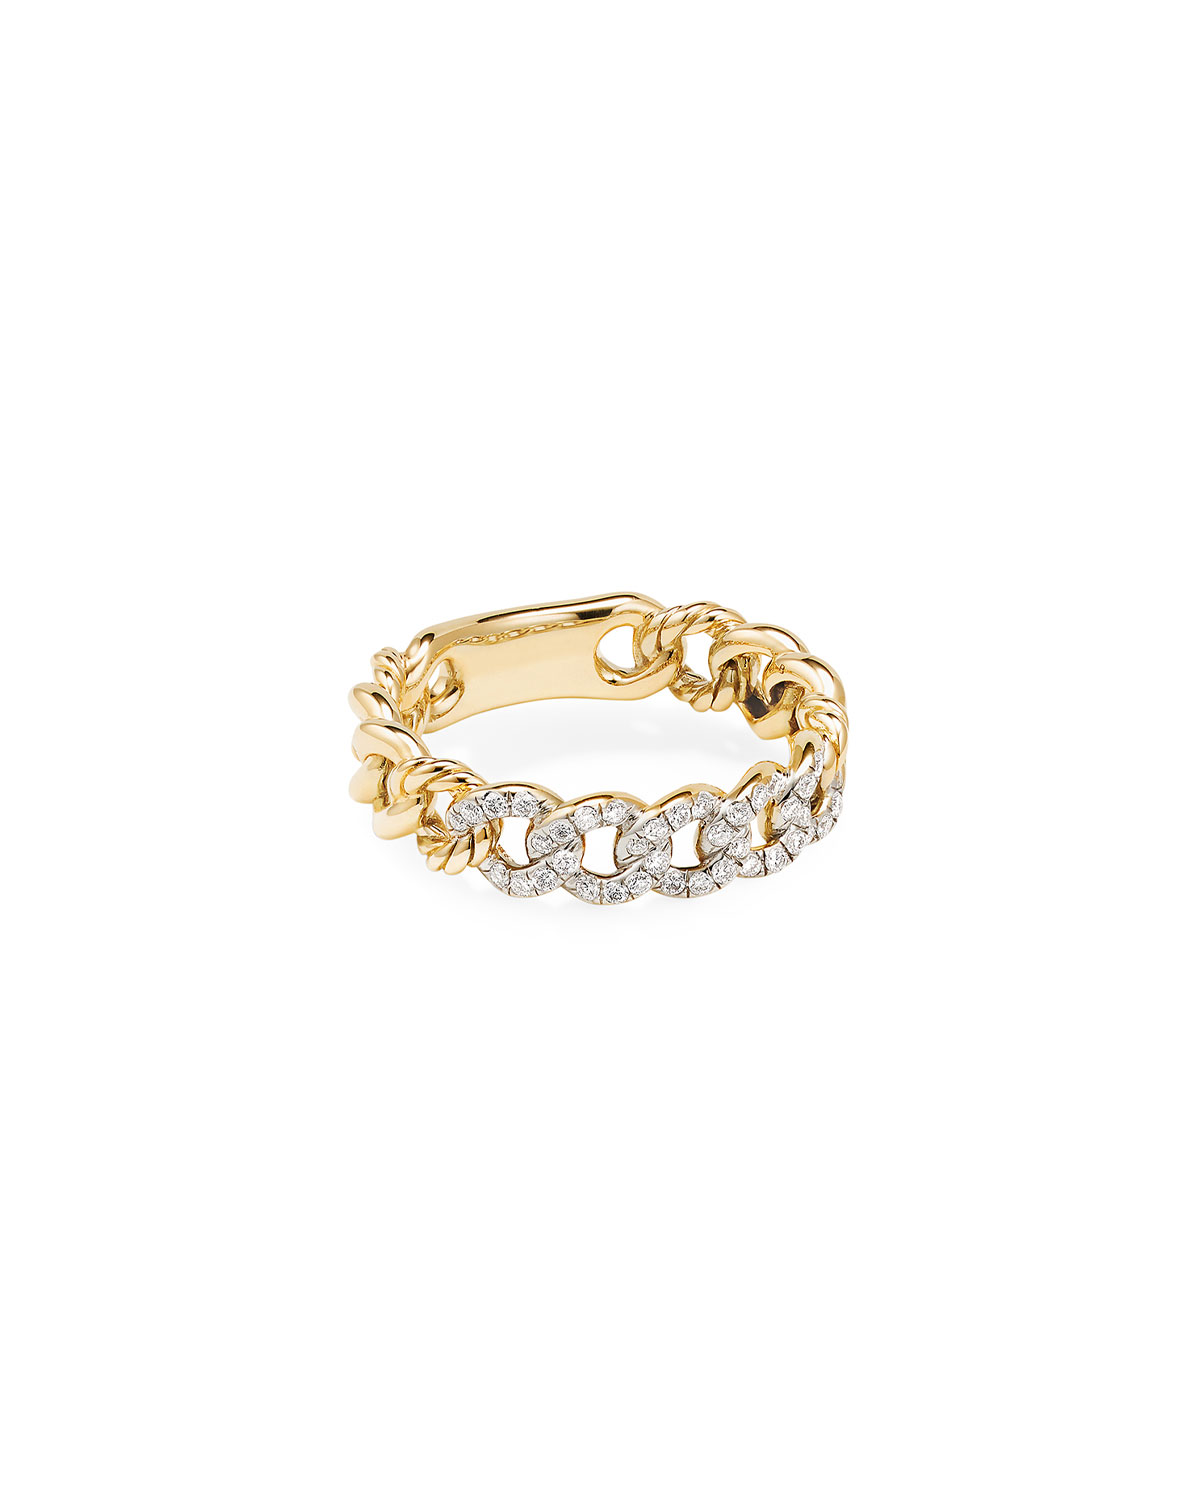 David Yurman Belmont Gold Narrow Curb Link Ring with Diamonds, Size 8